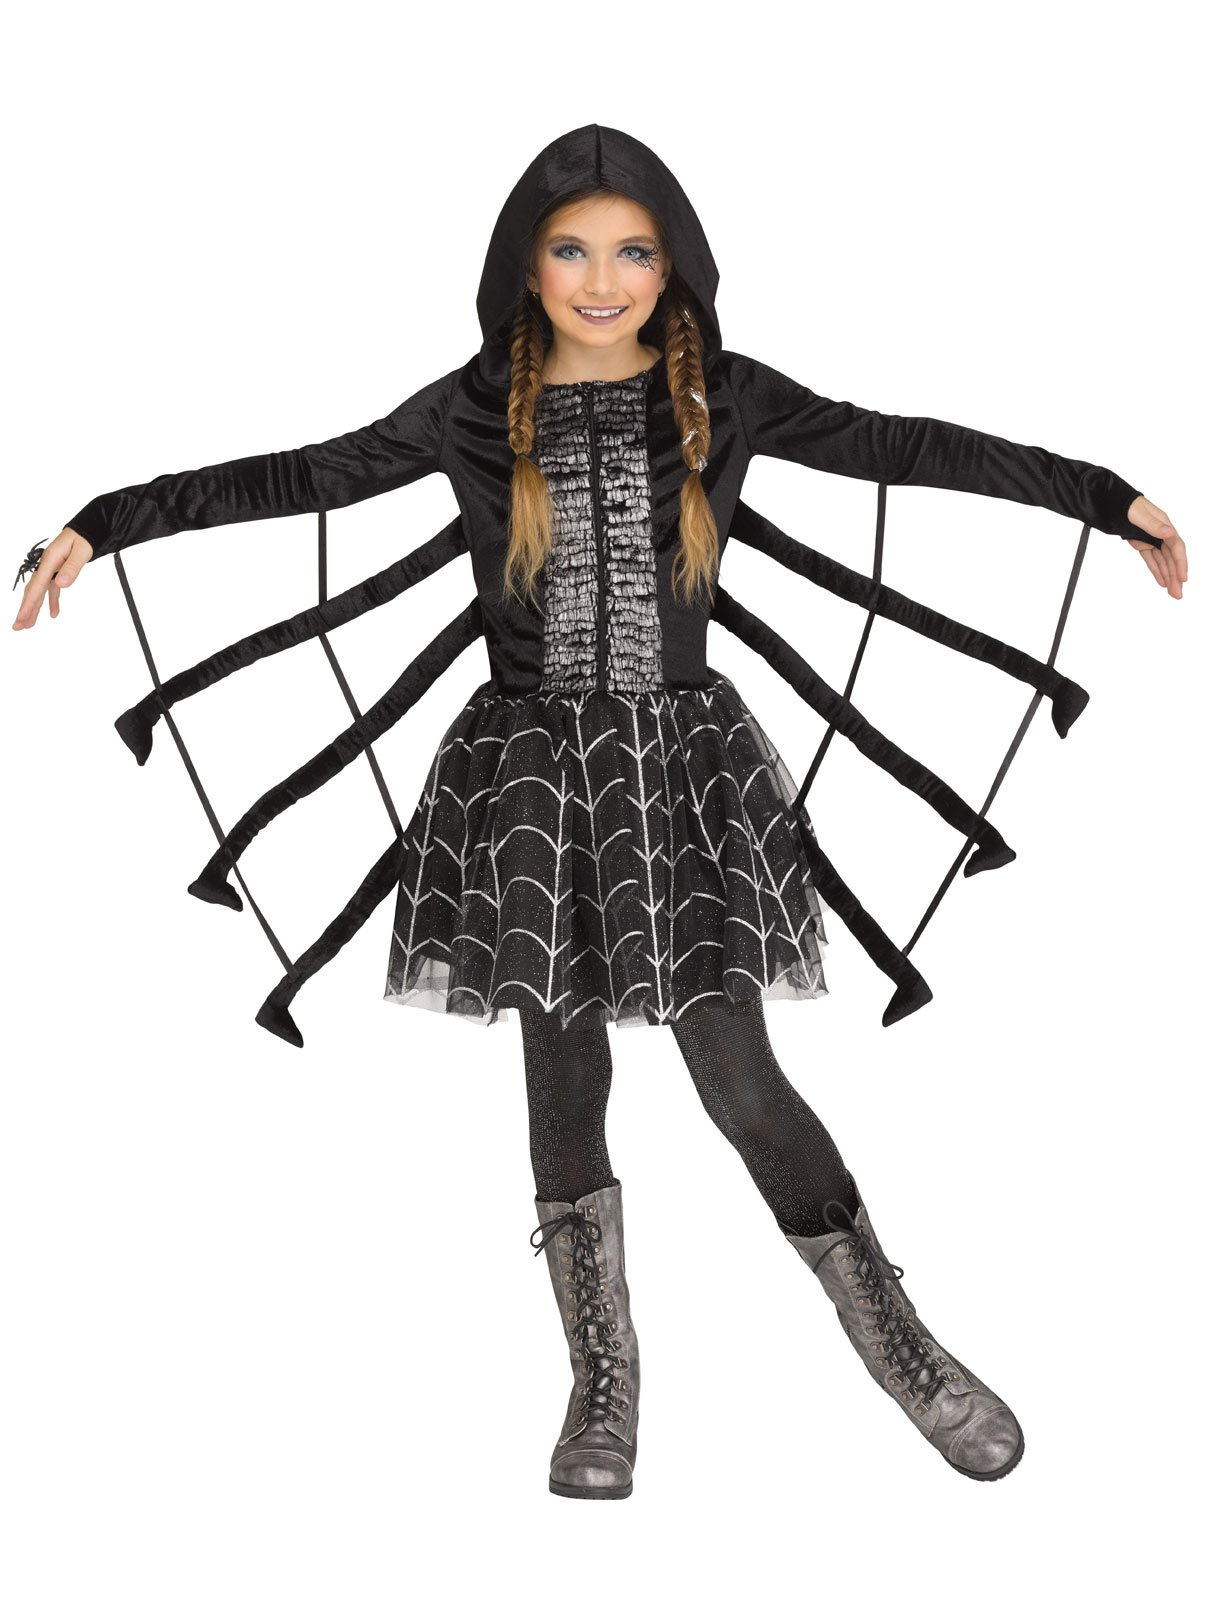 - 71qBW0xPn4L - Fun World Sparkling Spider Girls Halloween Costume